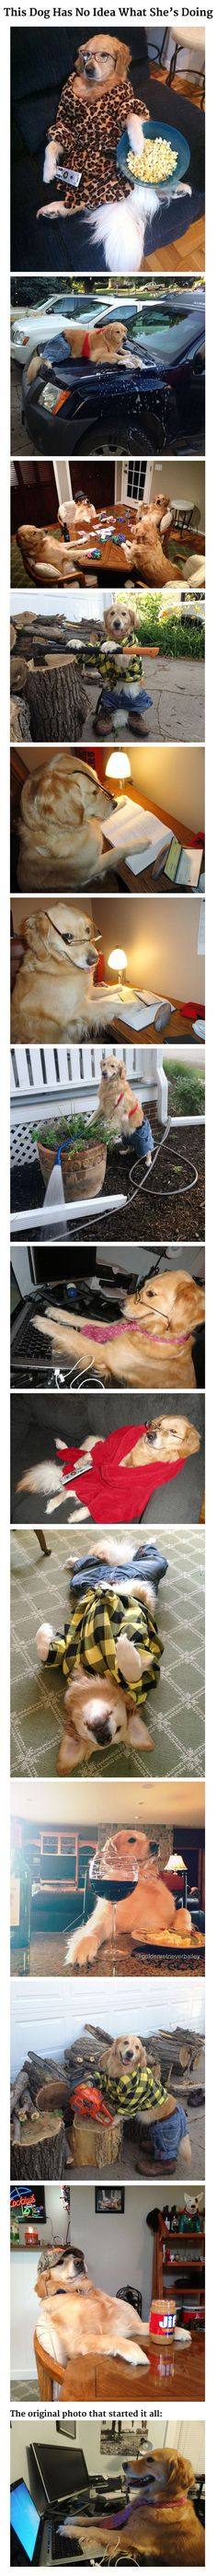 """This Dog Has No Idea What She's Doing. Remember that funny picture of a beautiful golden retriever seated at a computer with the caption """"I have no idea what I'm doing?"""" Her owner has come forward with more hilarious photos of her dog doing human things and being totally confused. Follow her https://www.facebook.com/disobailey http://instagram.com/goldenretrieverbailey http://imgur.com/gallery/WlgnC"""